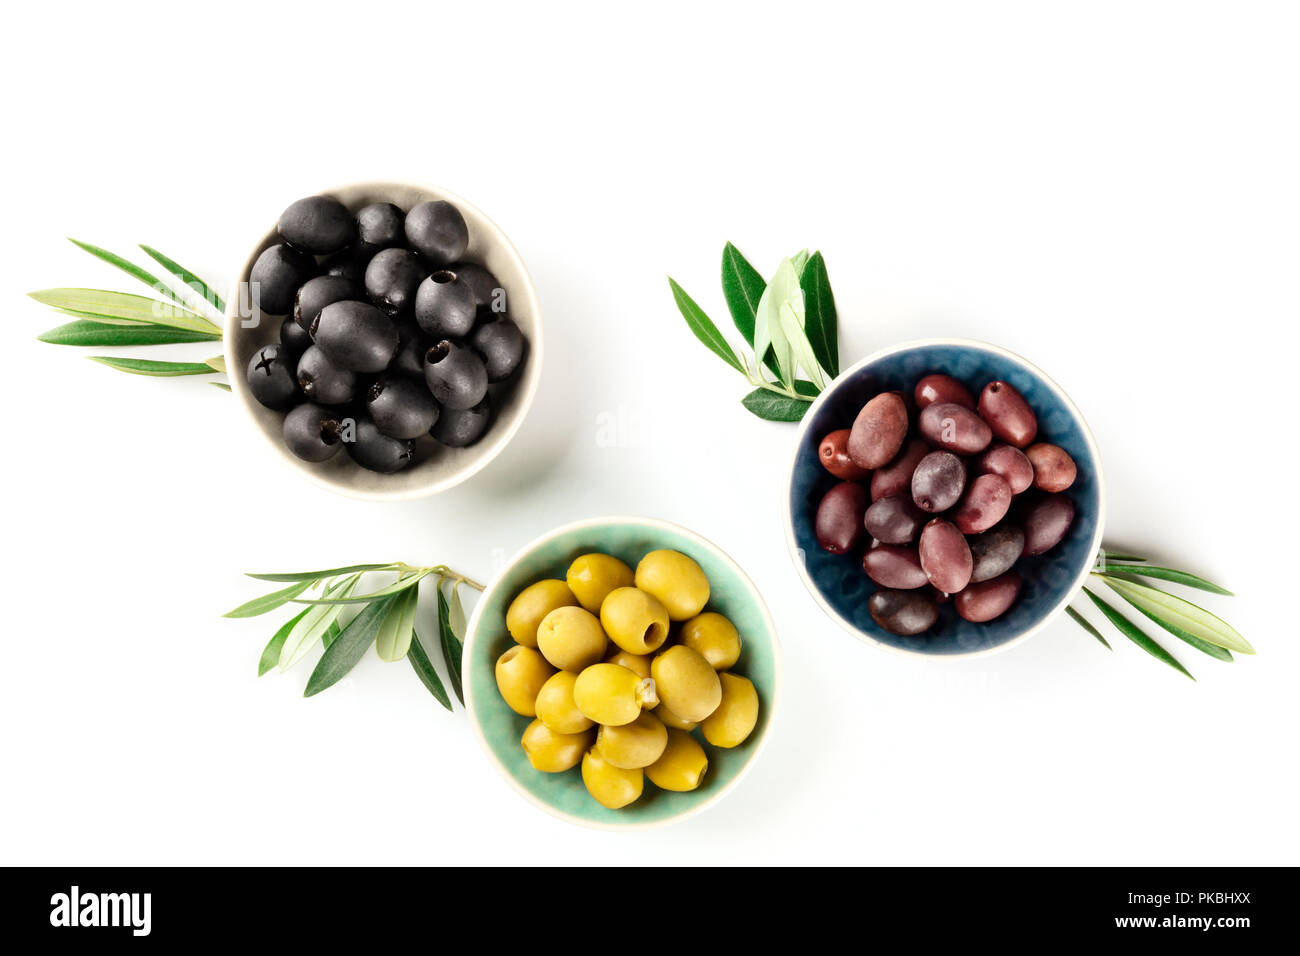 Overhead photo of various olives in bowls on white with copy space - Stock Image